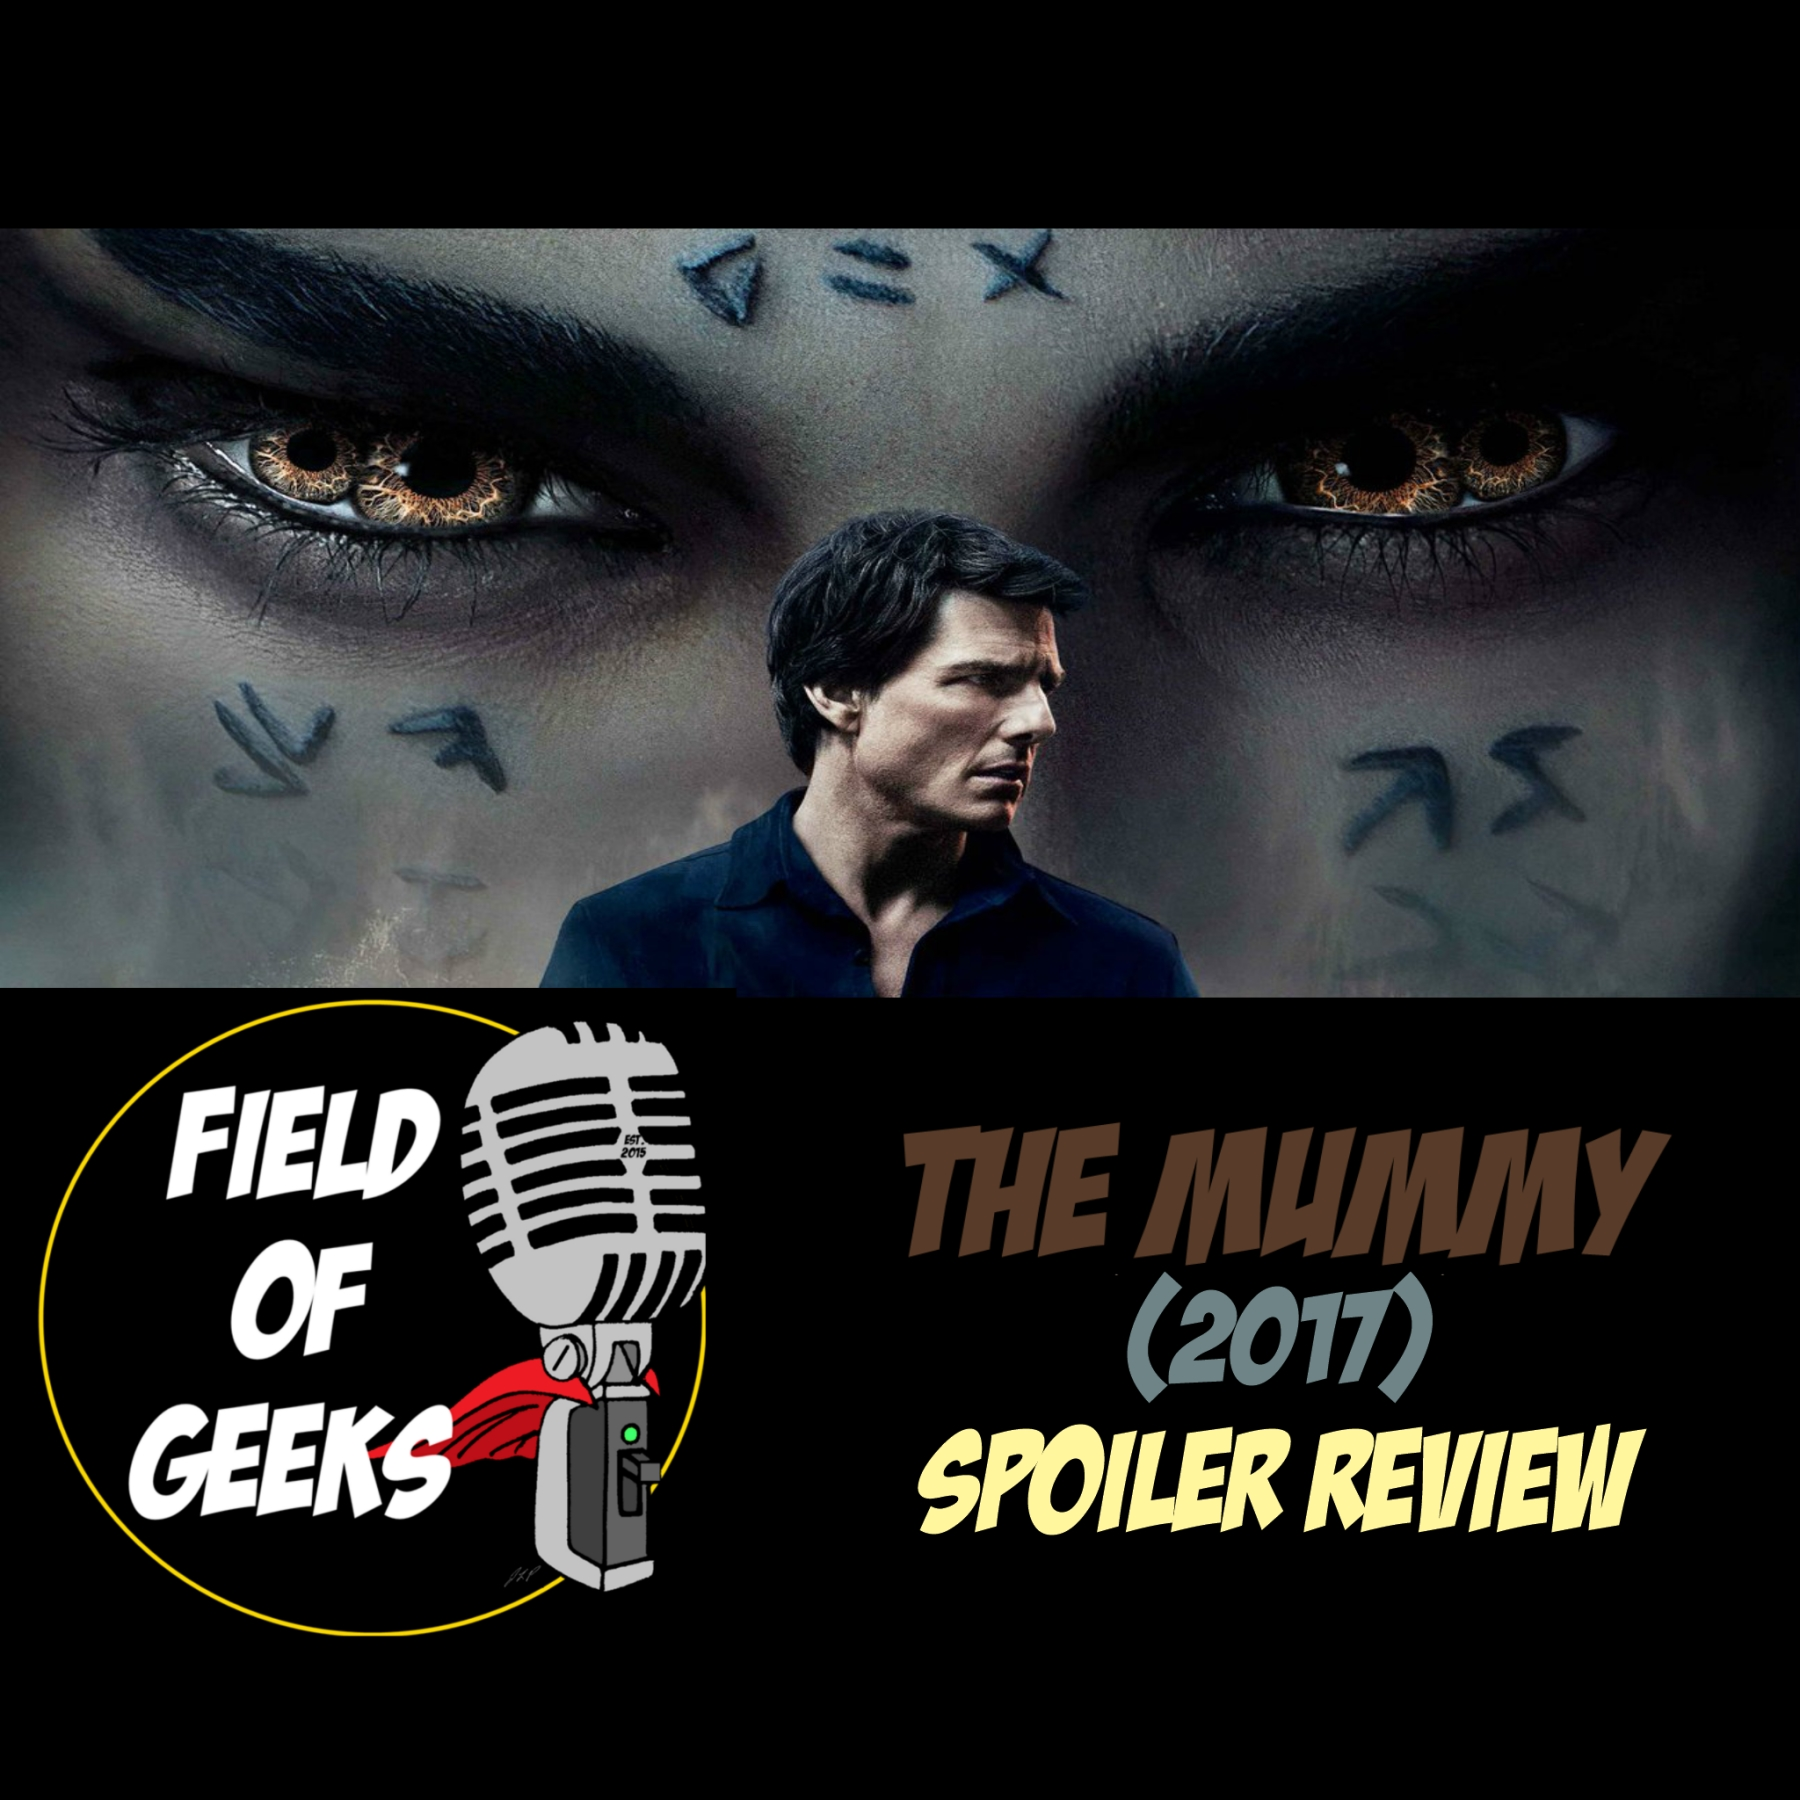 THE MUMMY (2017) SPOILER REVIEW